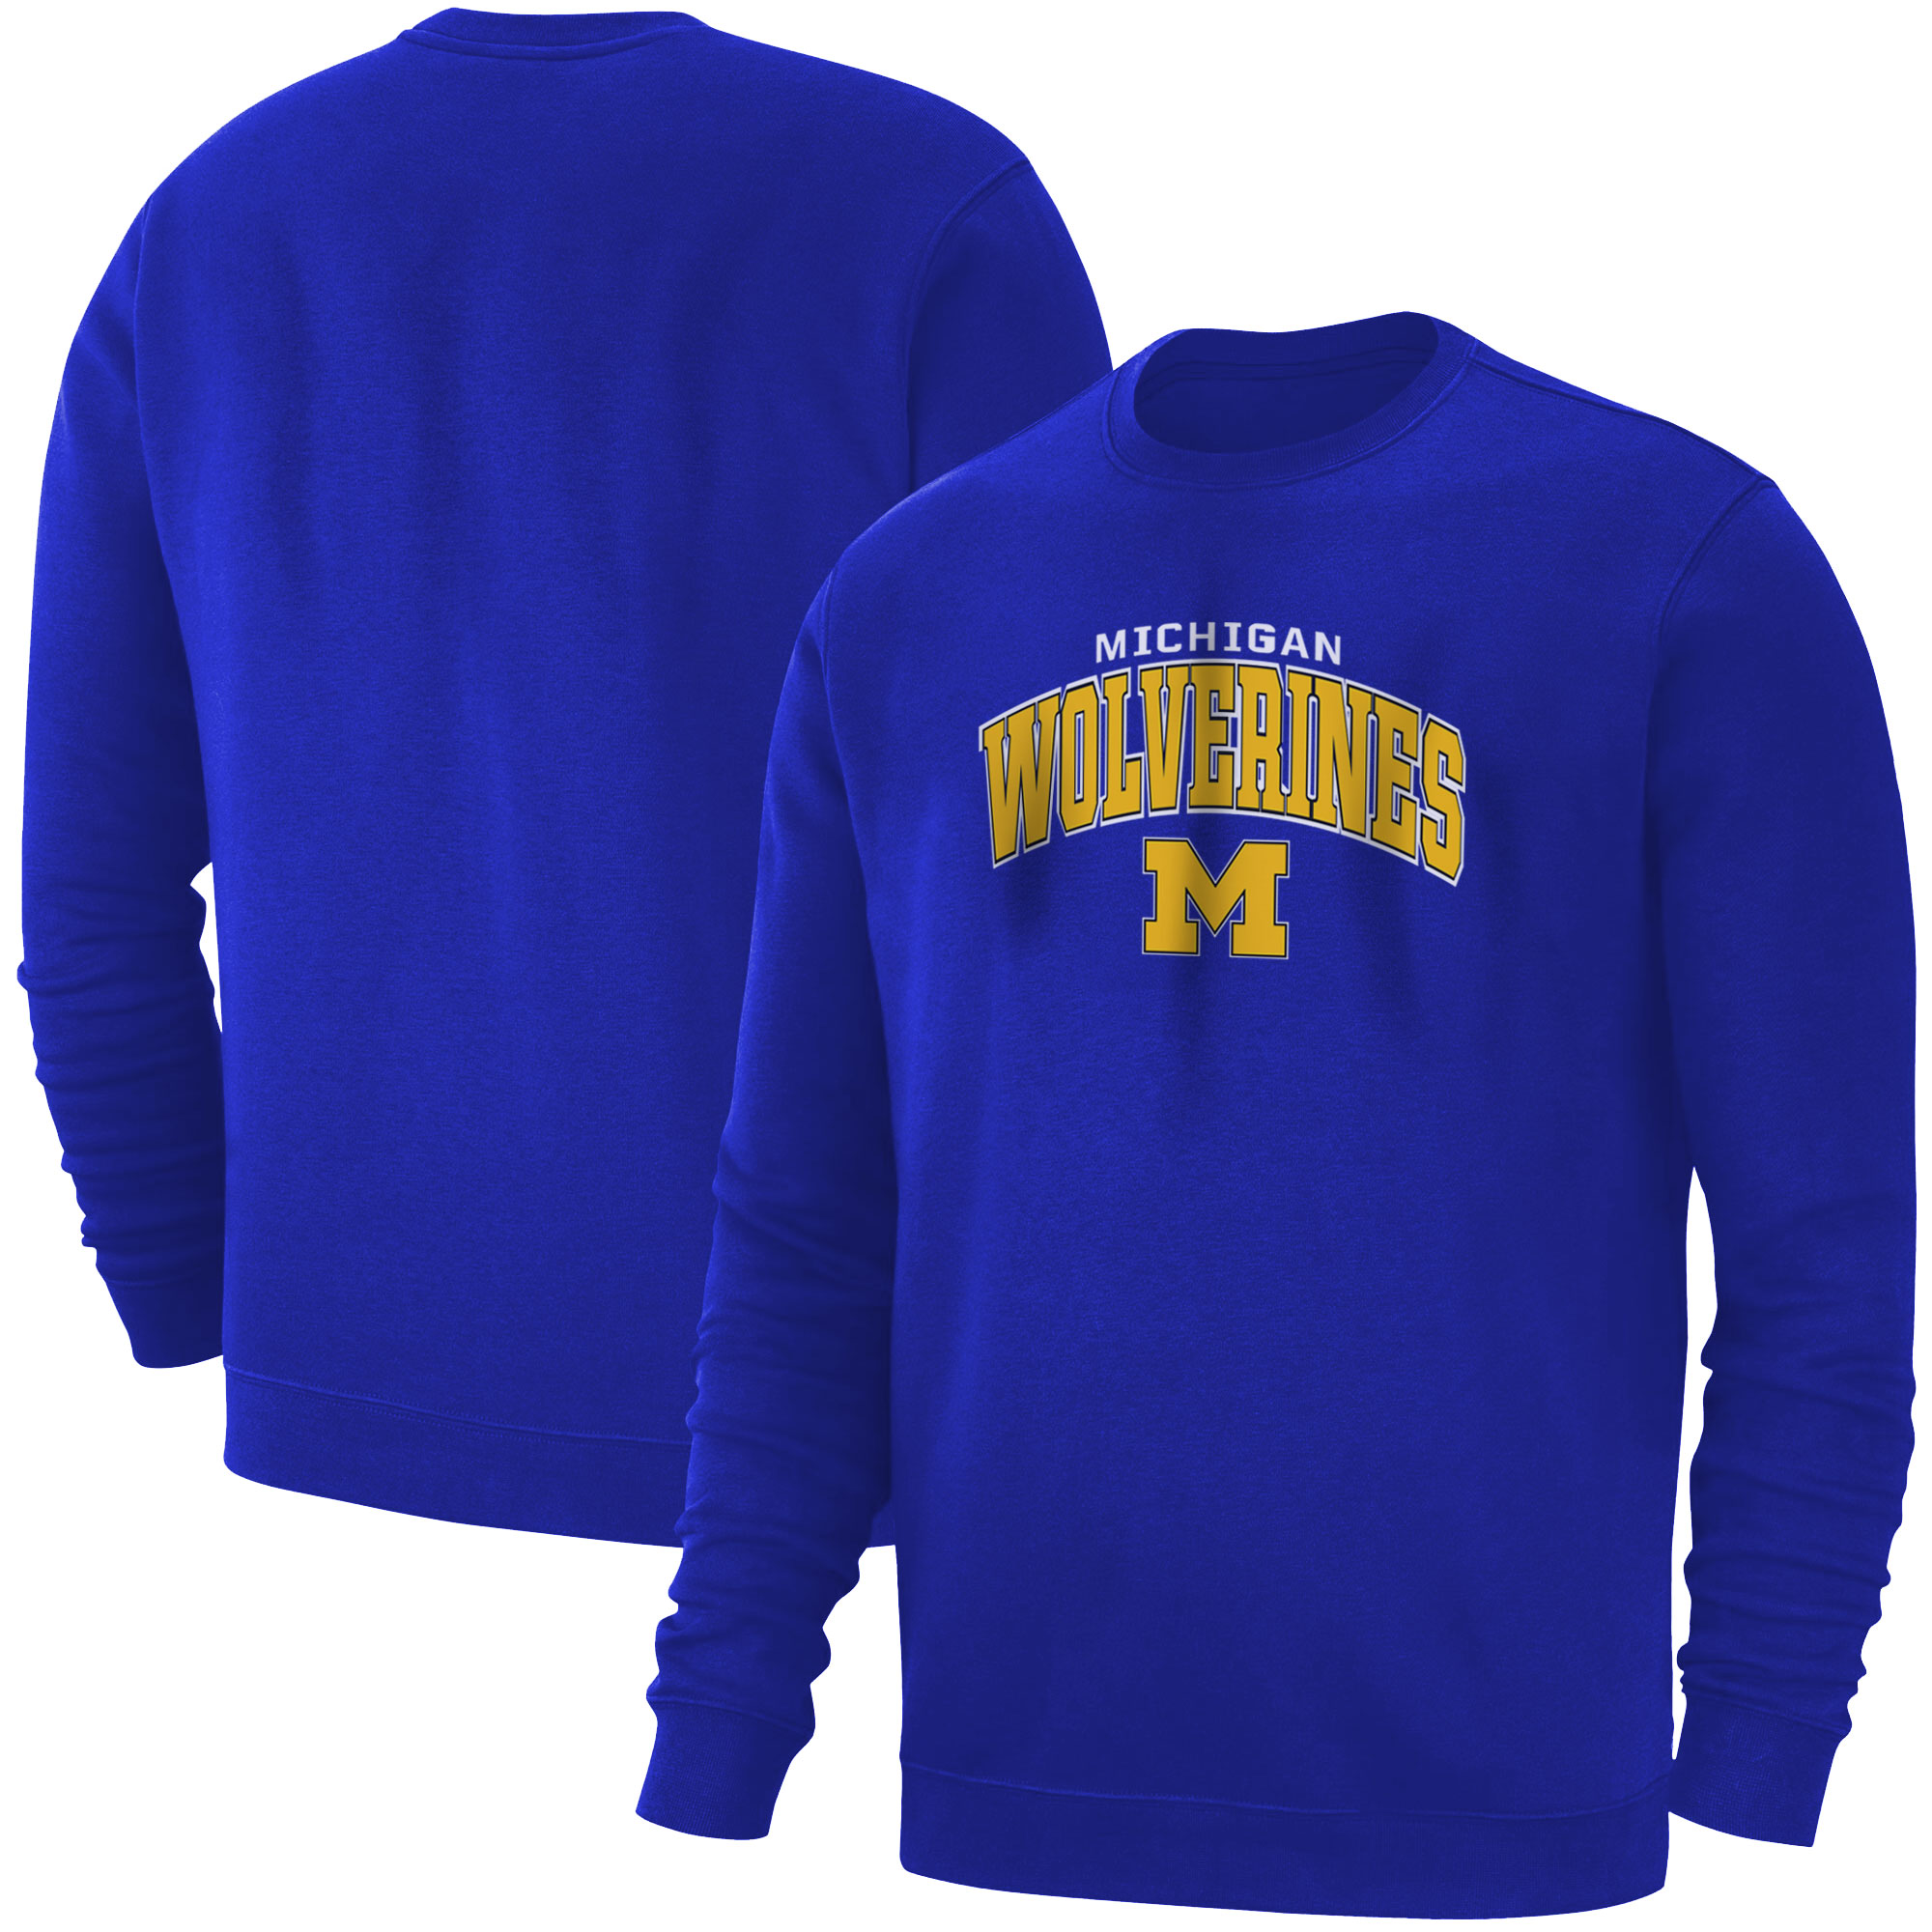 Michigan Wolverines Basic (BSC-BLU-488-NBA-MNW)